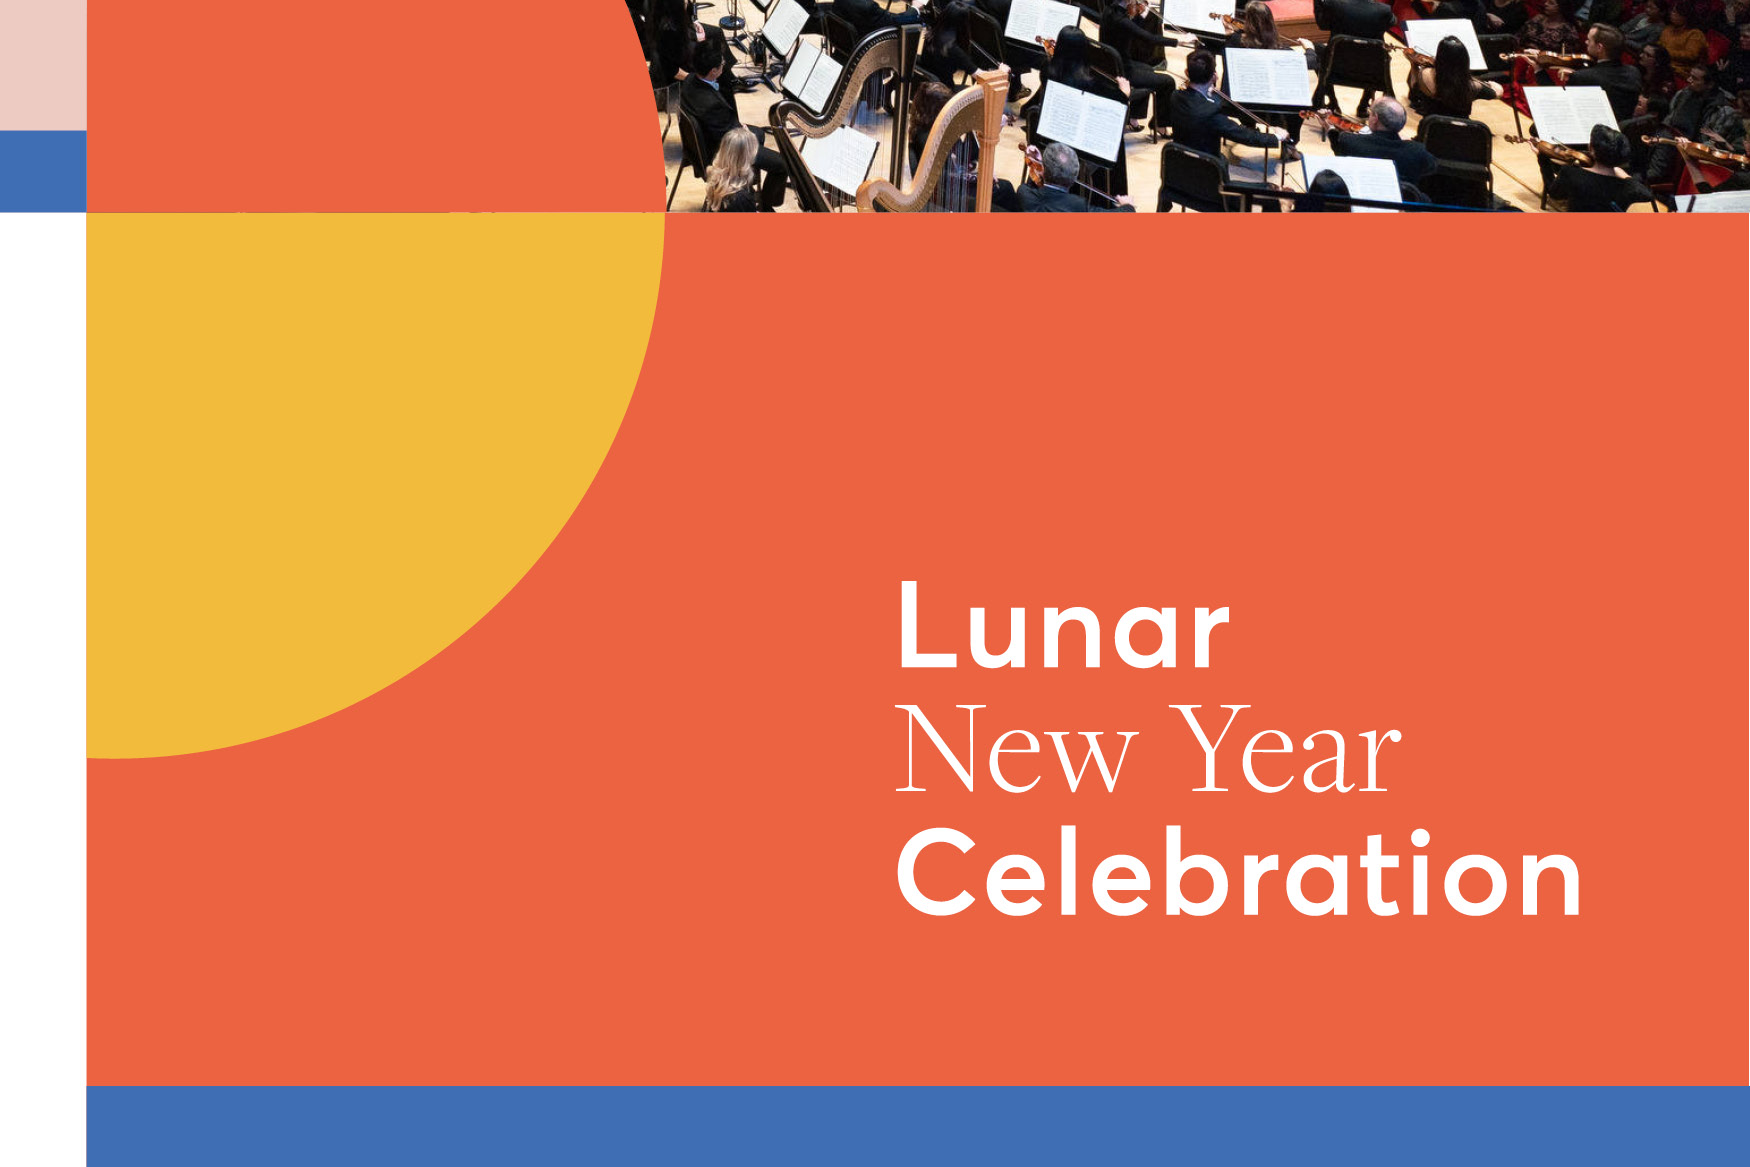 Lunar New Year Celebration Concert